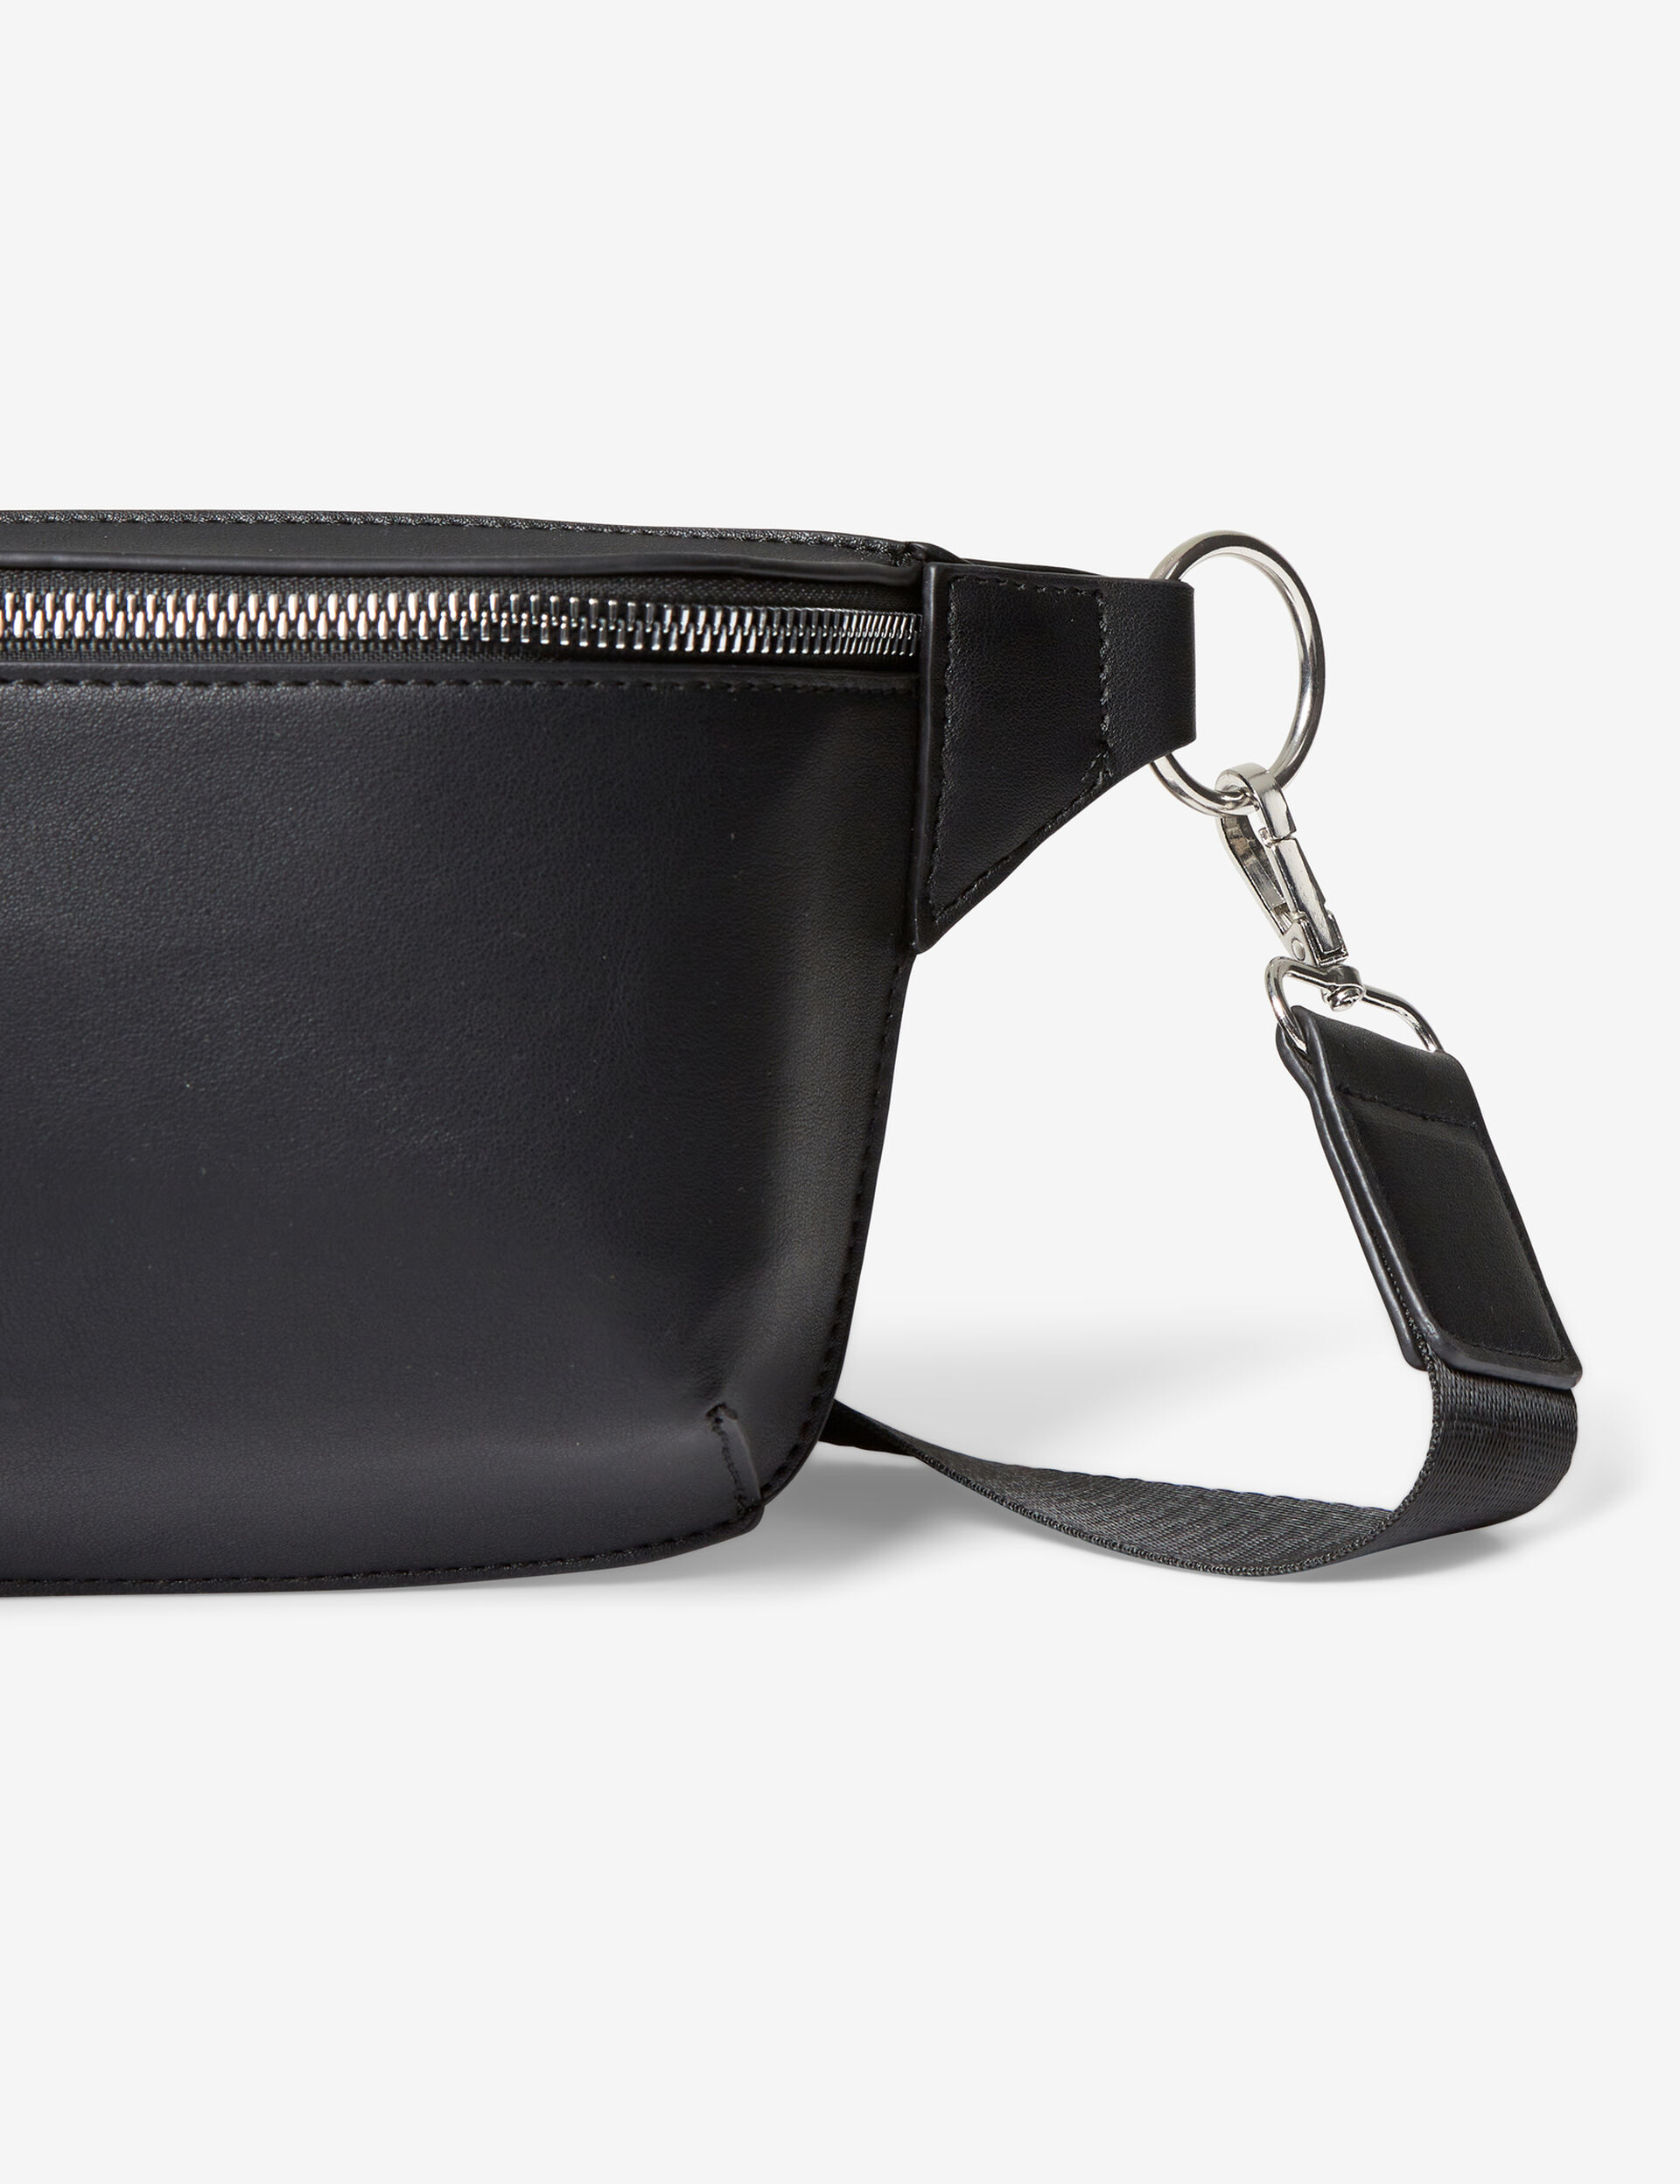 Zipped bum bag